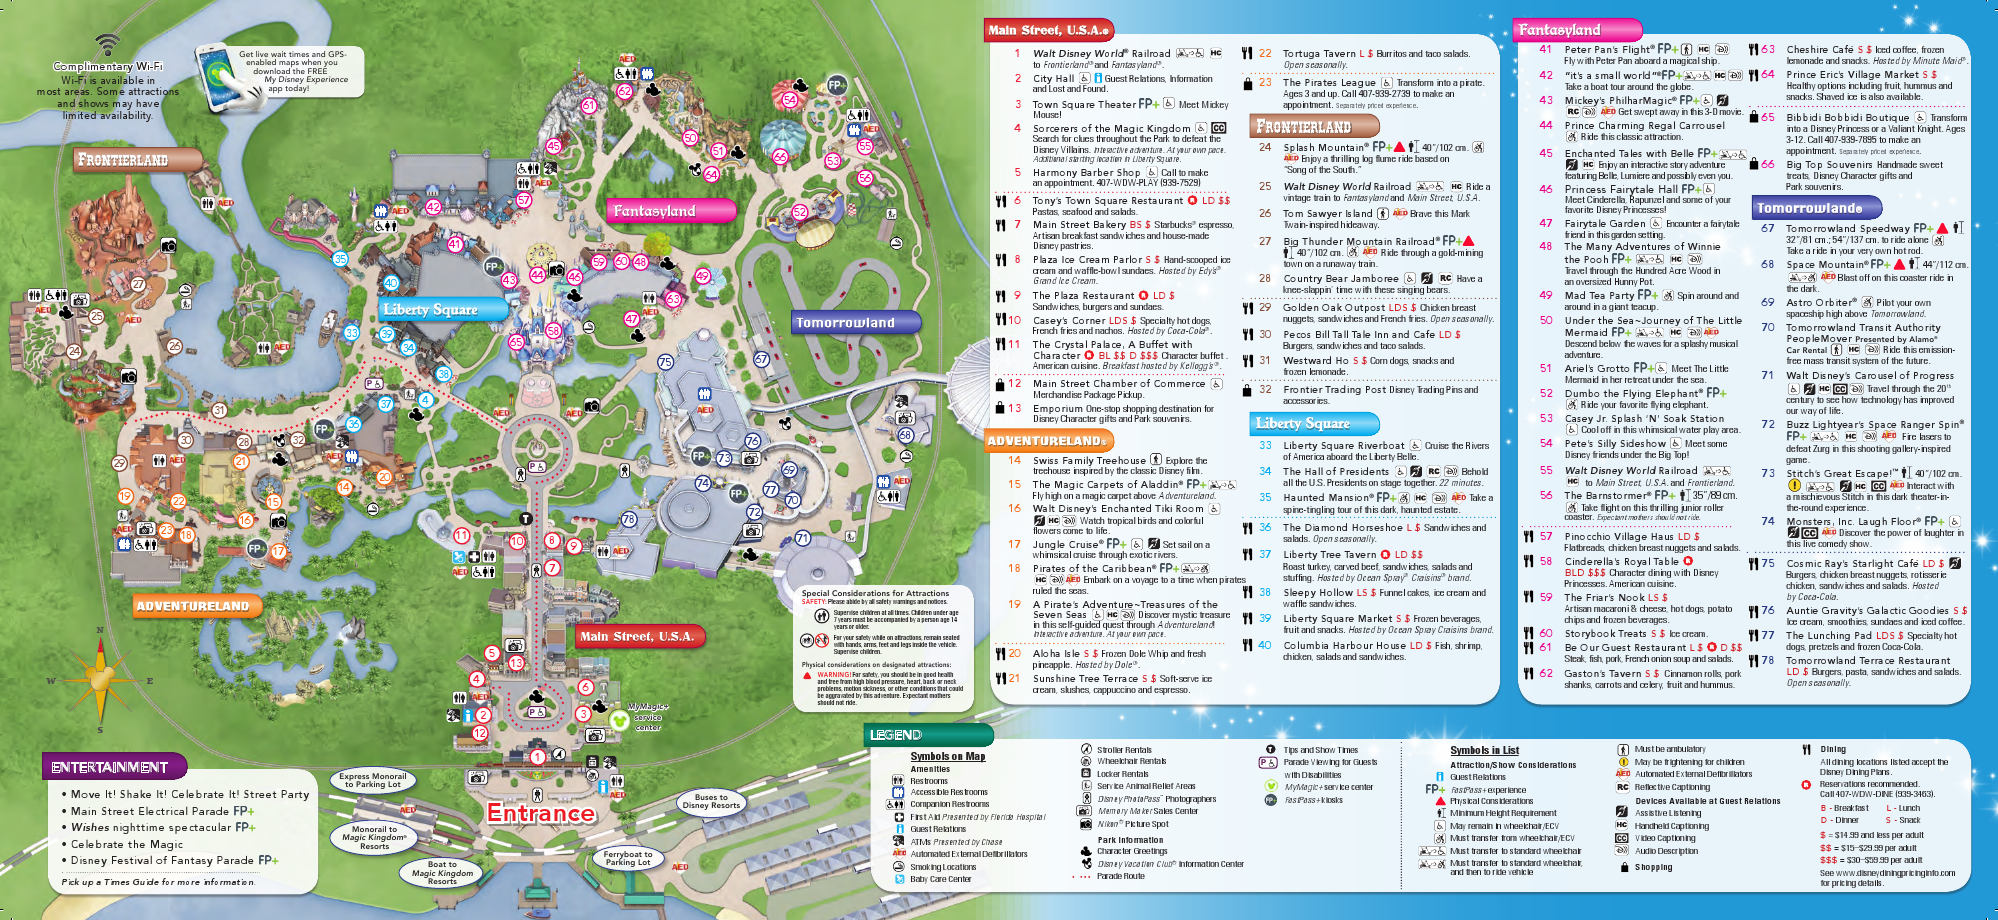 2014 Magic Kingdom Park Map - Walt Disney World Park Maps - WDWFans